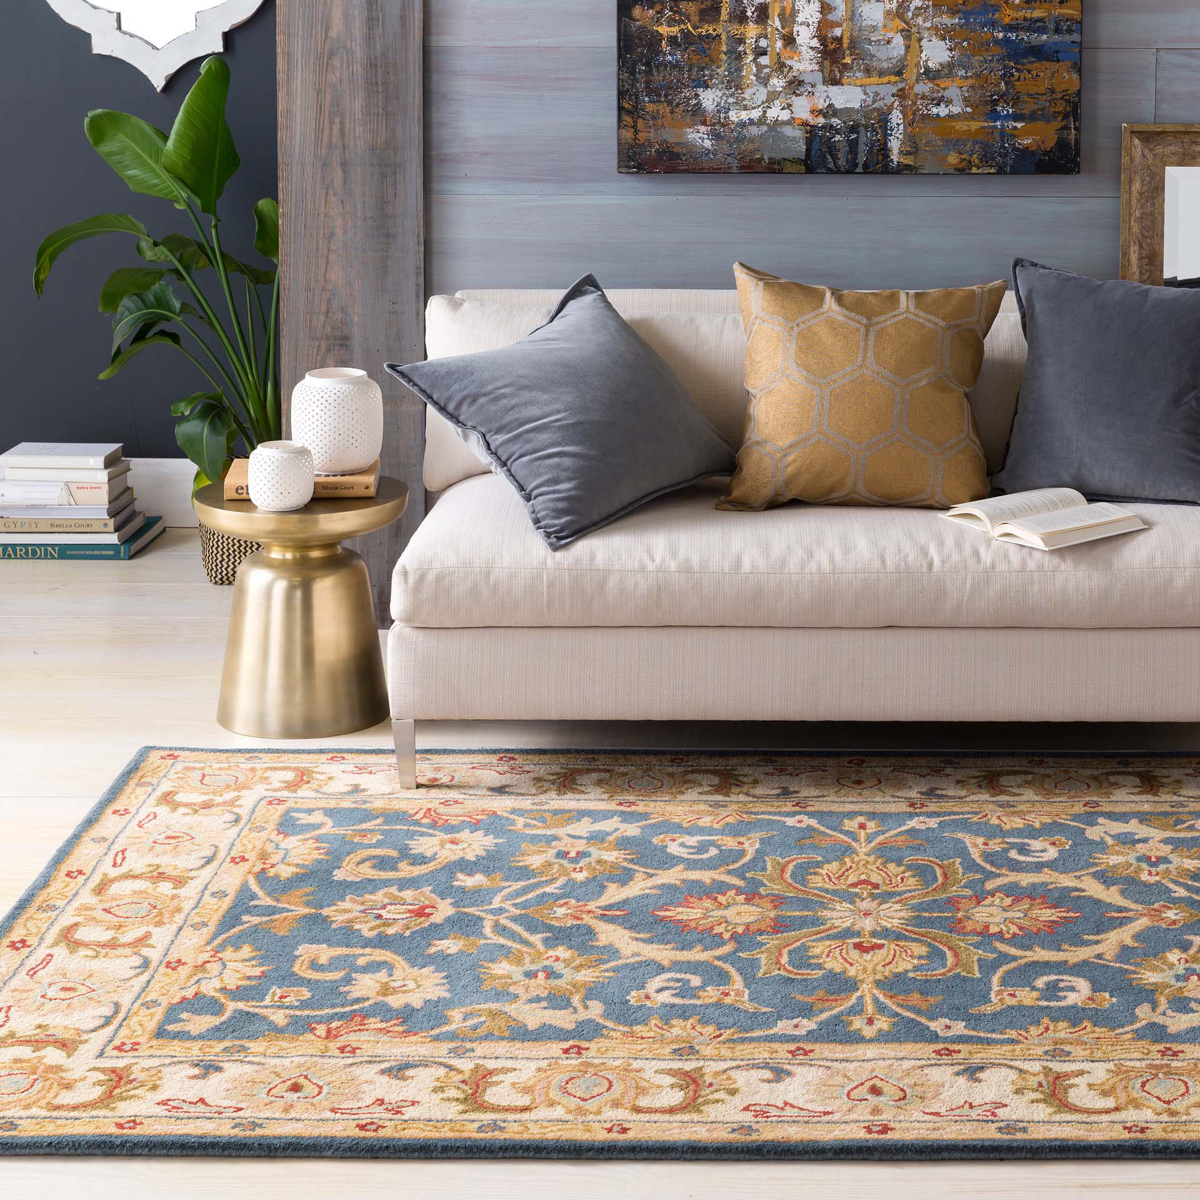 Classic hand-tufted area rug from India with cream, blue and red accents - Living Room ShotClose